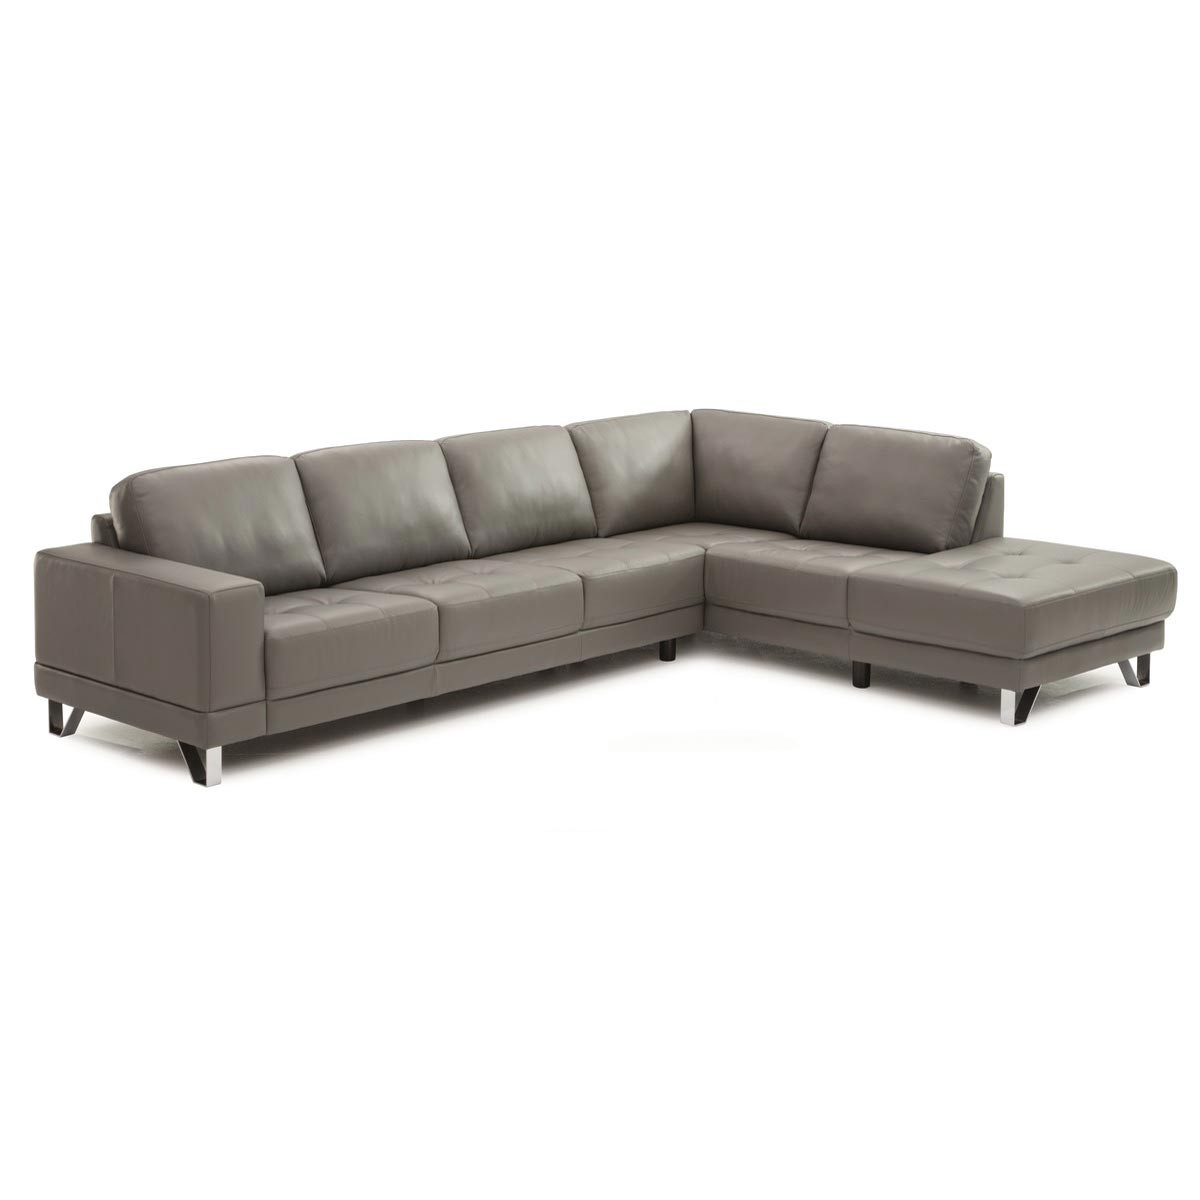 modern design sofa seattle fairfield furniture collection sectional palliser thesofa